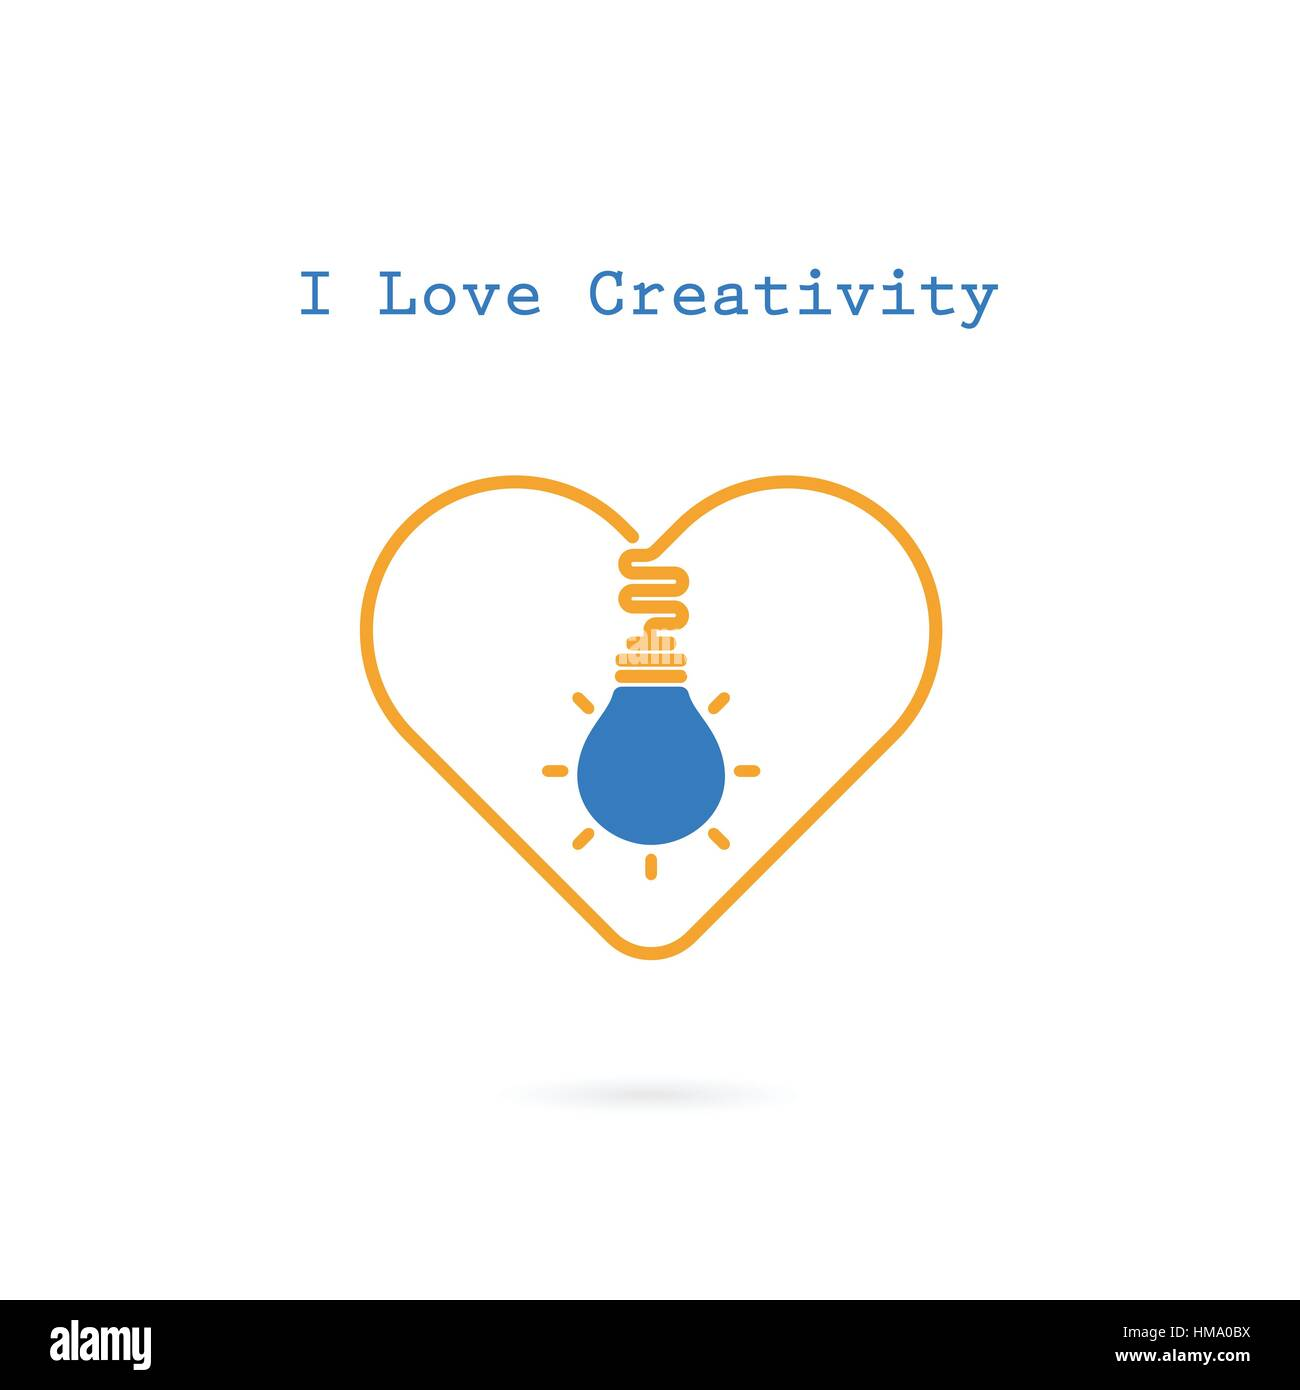 Design banner template - Creative Light Bulb And Heart Sign Vector Design Banner Template Light Bulb Icon With Heart